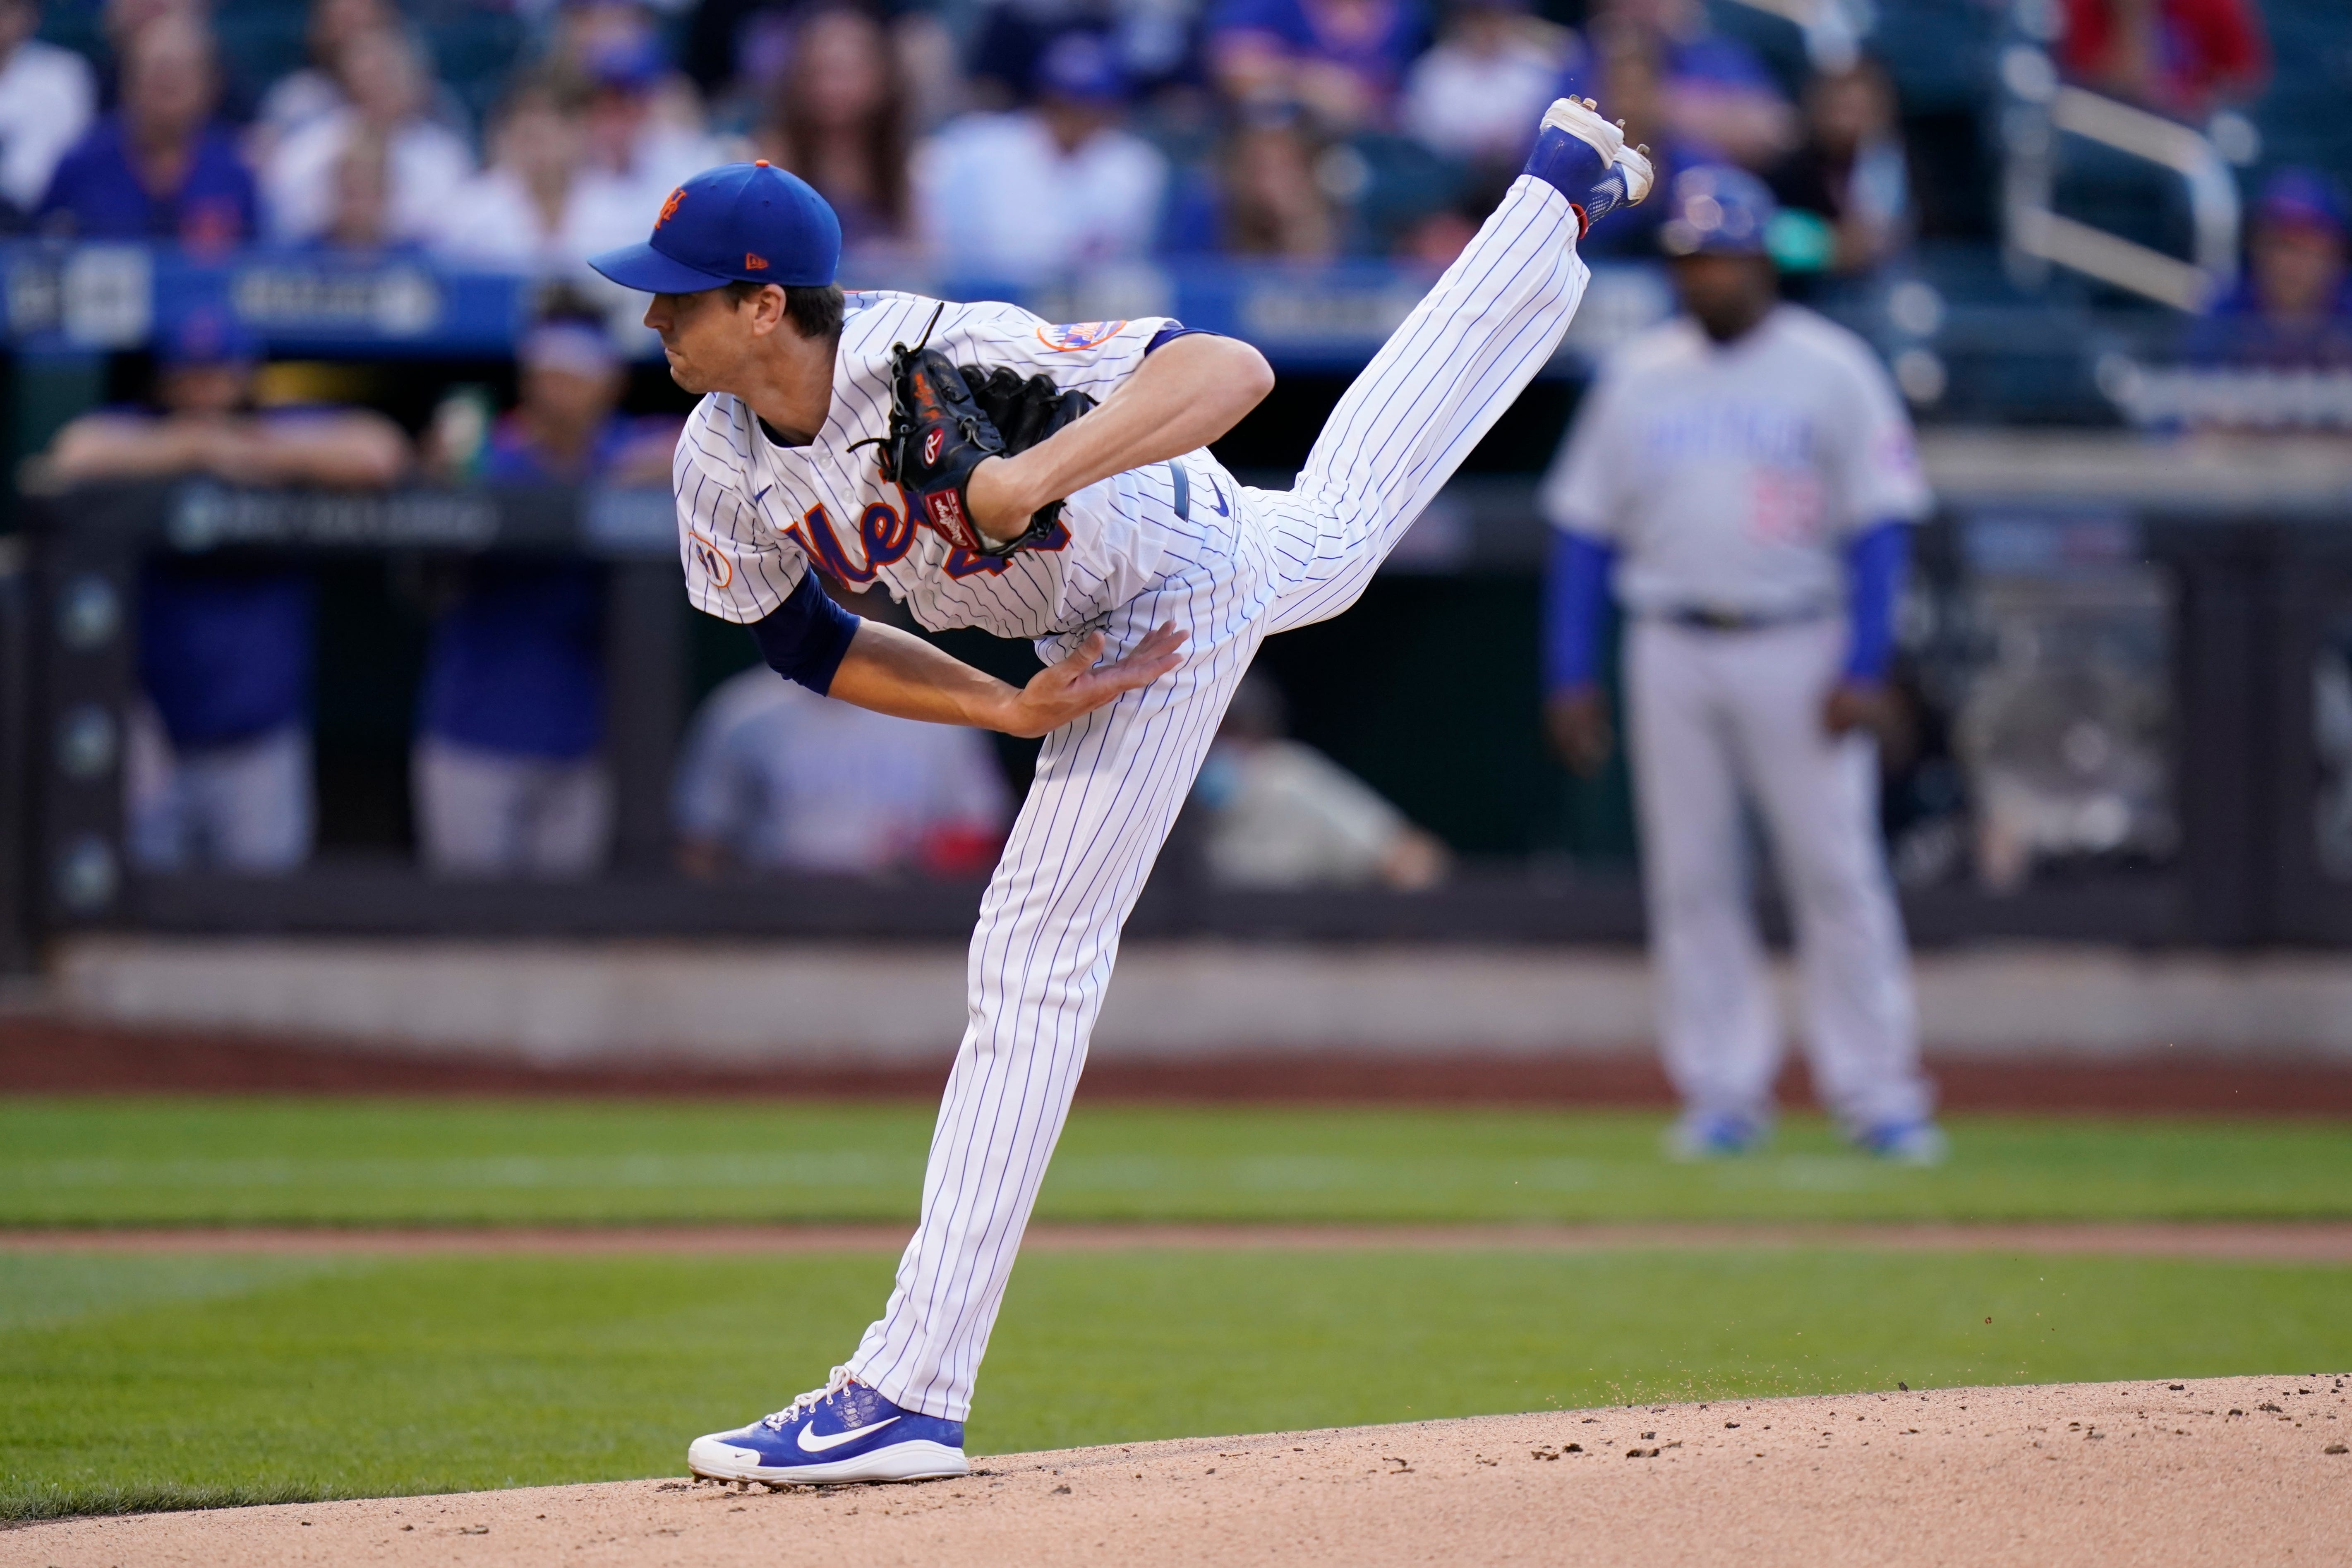 New York Mets pitcher Jacob deGrom is checked for foreign substances and passes inspection